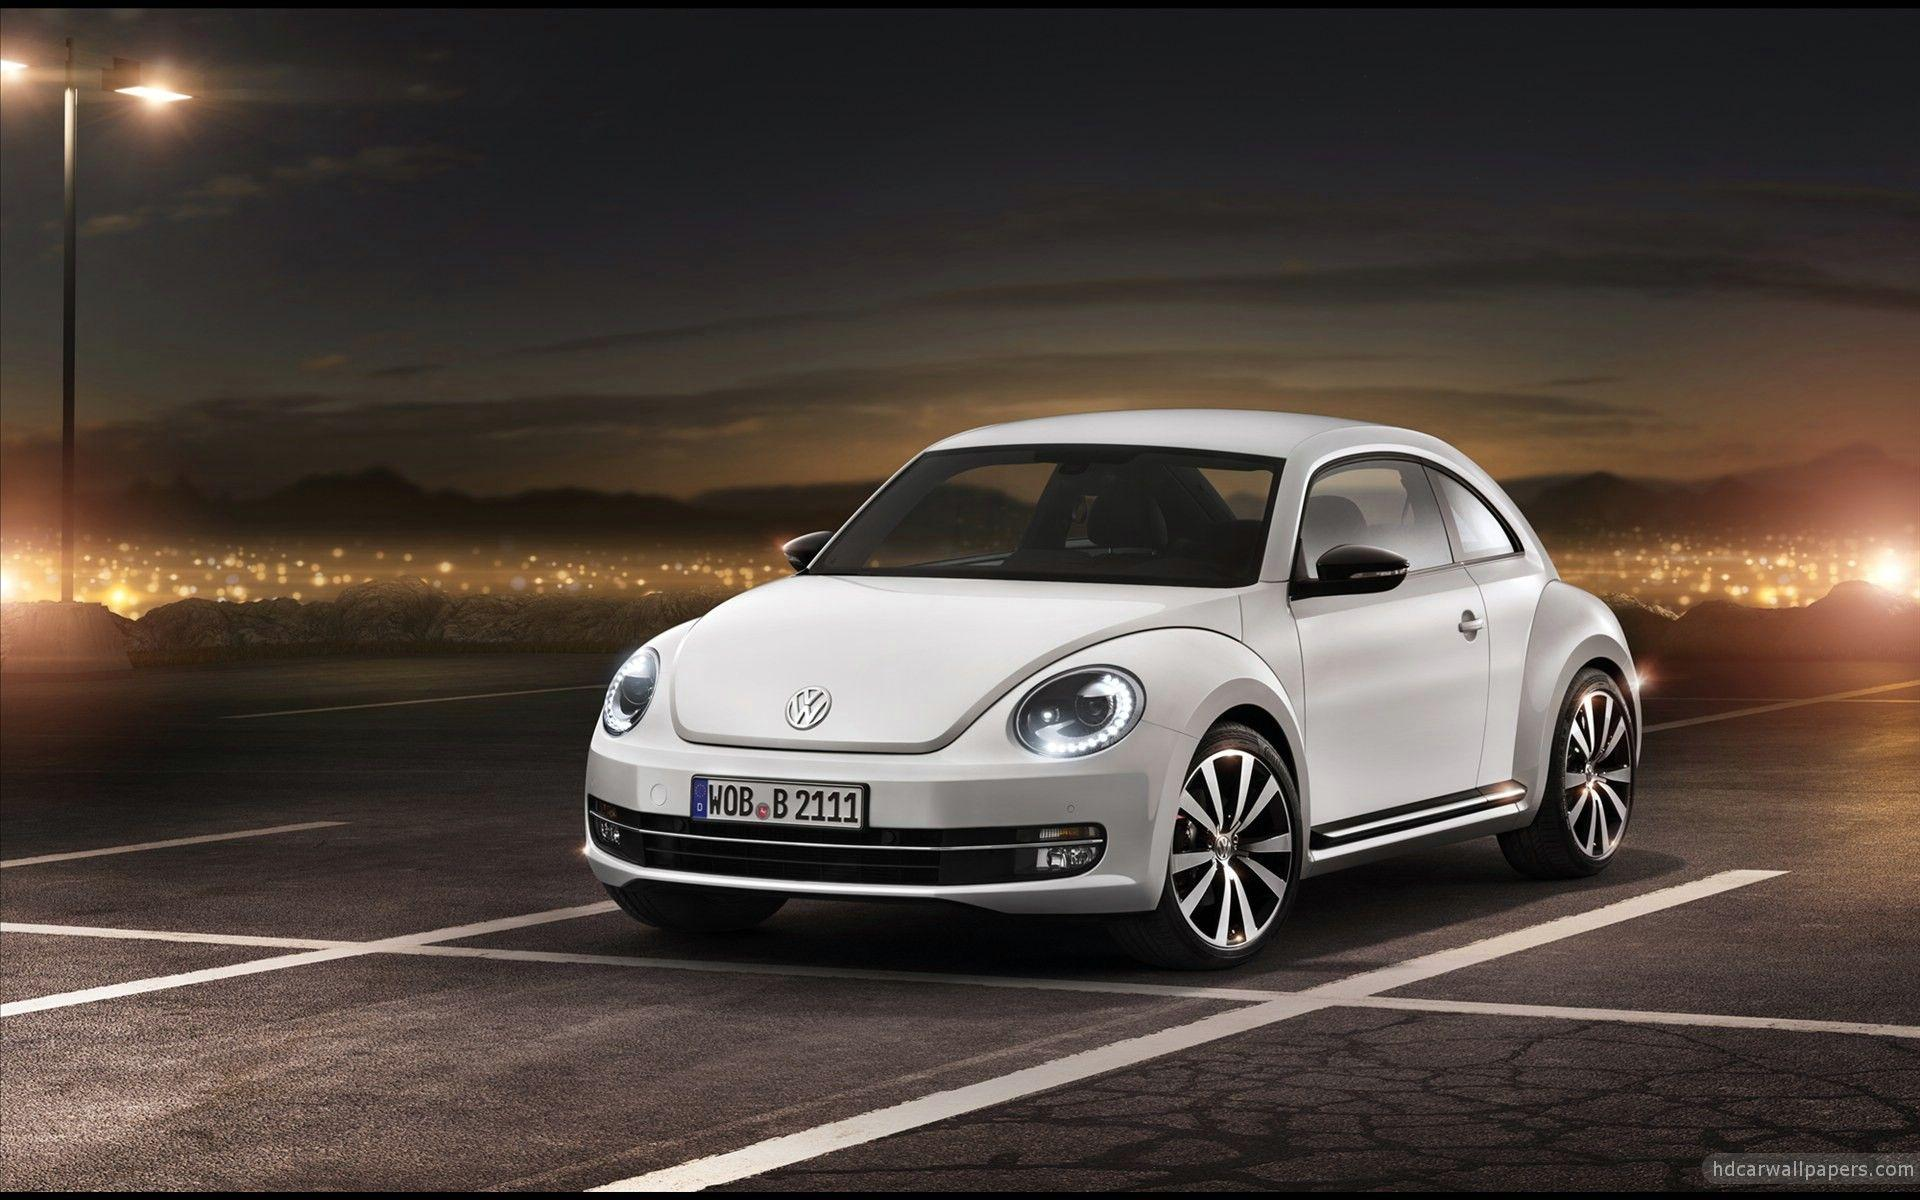 2012 Volkswagen Beetle Wallpapers